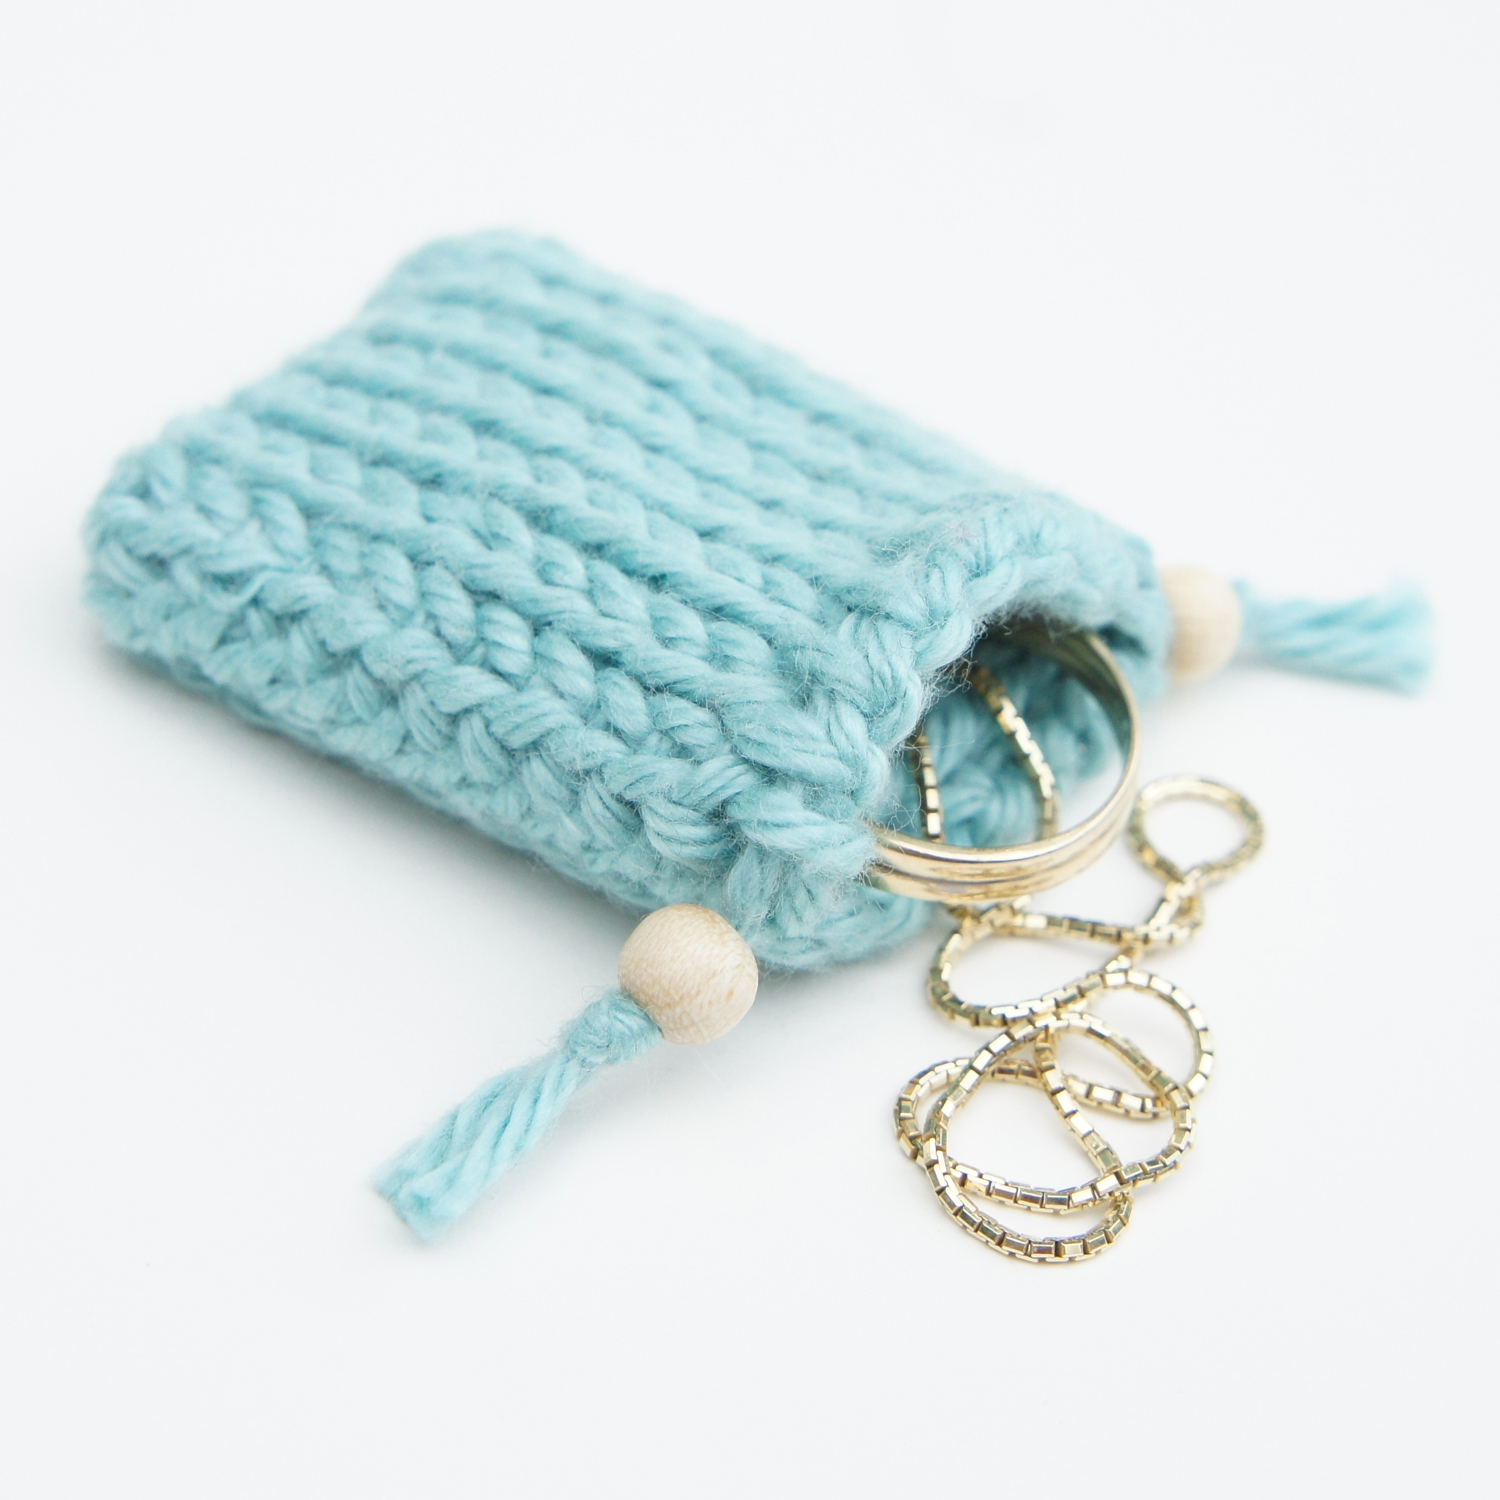 String Bag Crochet Pattern : ... cute design shop: new tunisian crochet pattern - drawstring gift bags